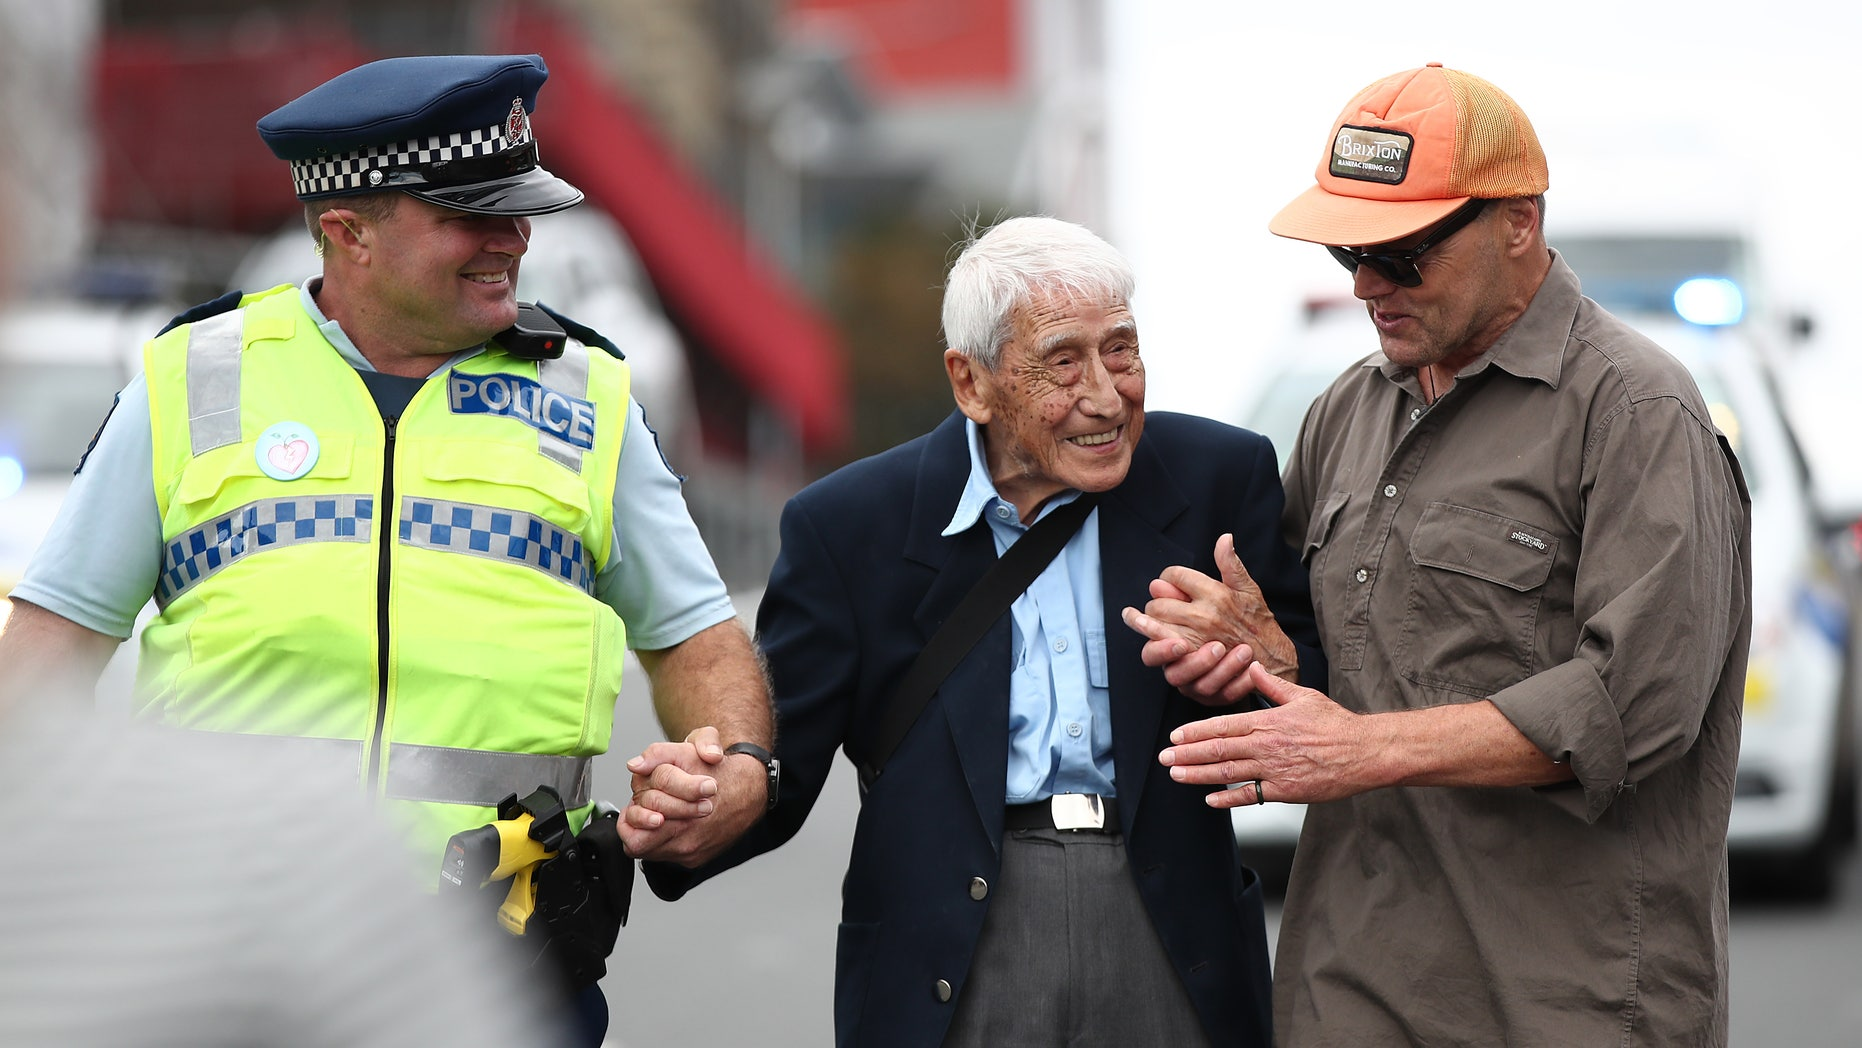 """John Sato, 95, one of only two Japanese soldiers in the New Zealand Army in World War II, took two Howick buses to attend the march against racism at Aotea Square on March 24, 201<div class=""""e3lan e3lan-in-post1""""><script async src=""""//pagead2.googlesyndication.com/pagead/js/adsbygoogle.js""""></script> <!-- Text_Display_Ad --> <ins class=""""adsbygoogle""""      style=""""display:block""""      data-ad-client=""""ca-pub-7542518979287585""""      data-ad-slot=""""2196042218""""      data-ad-format=""""auto""""></ins> <script> (adsbygoogle = window.adsbygoogle 